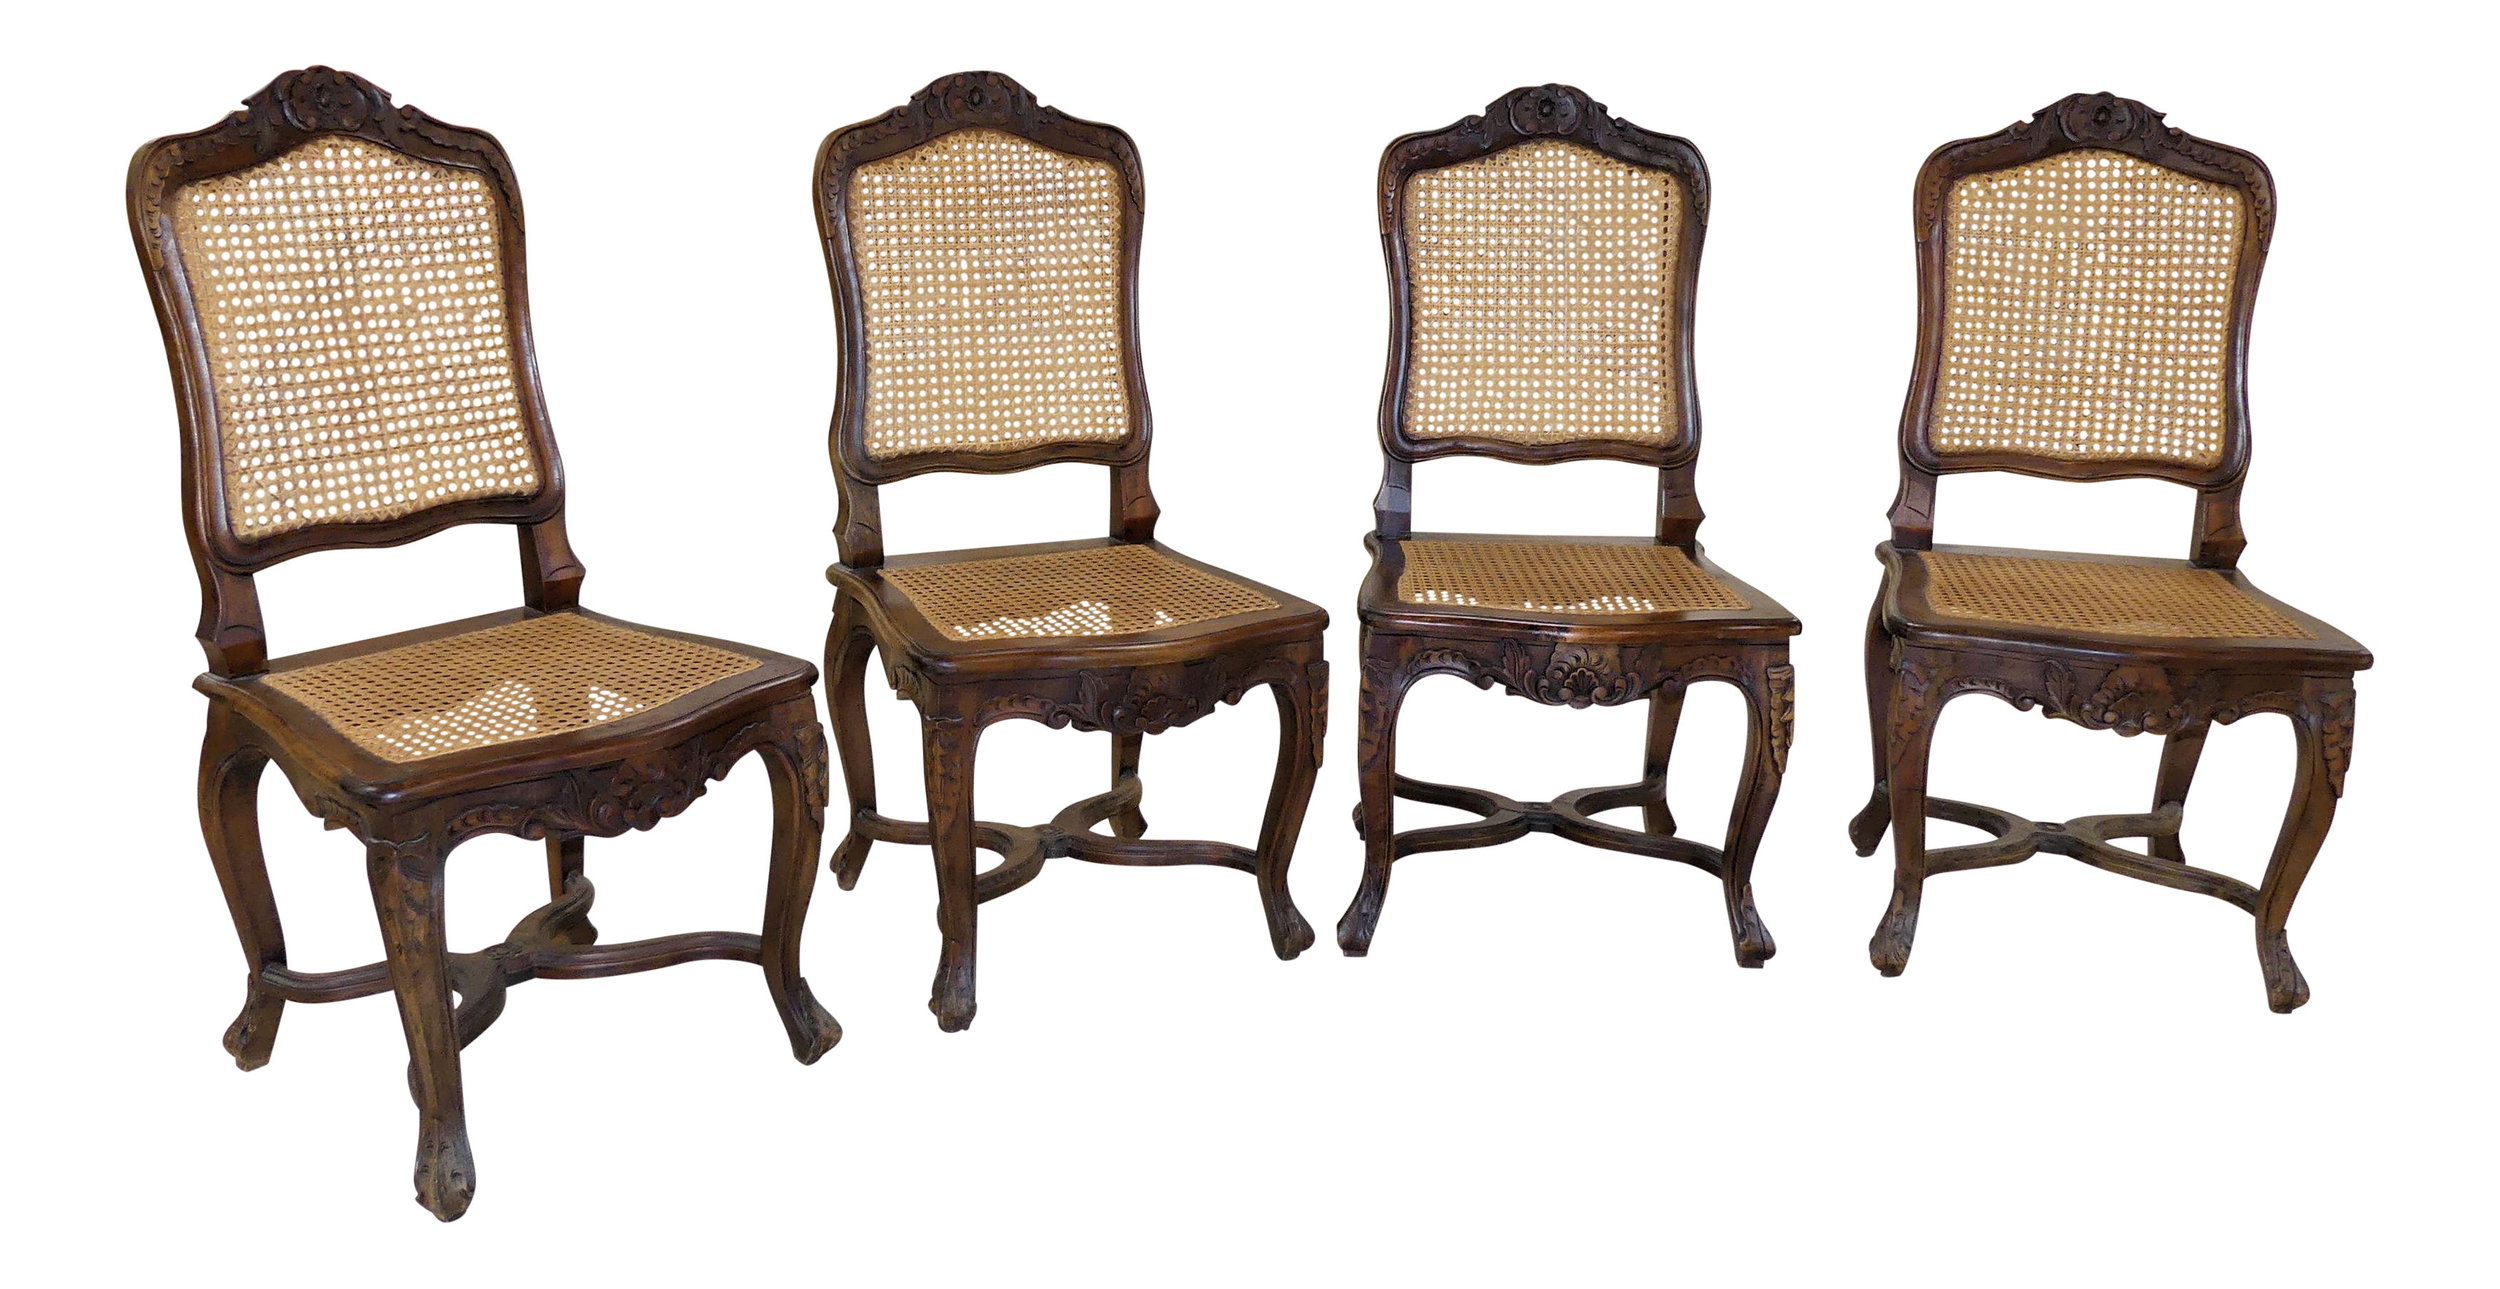 SOLD French Country Carved Wood Caned Dining Chairs